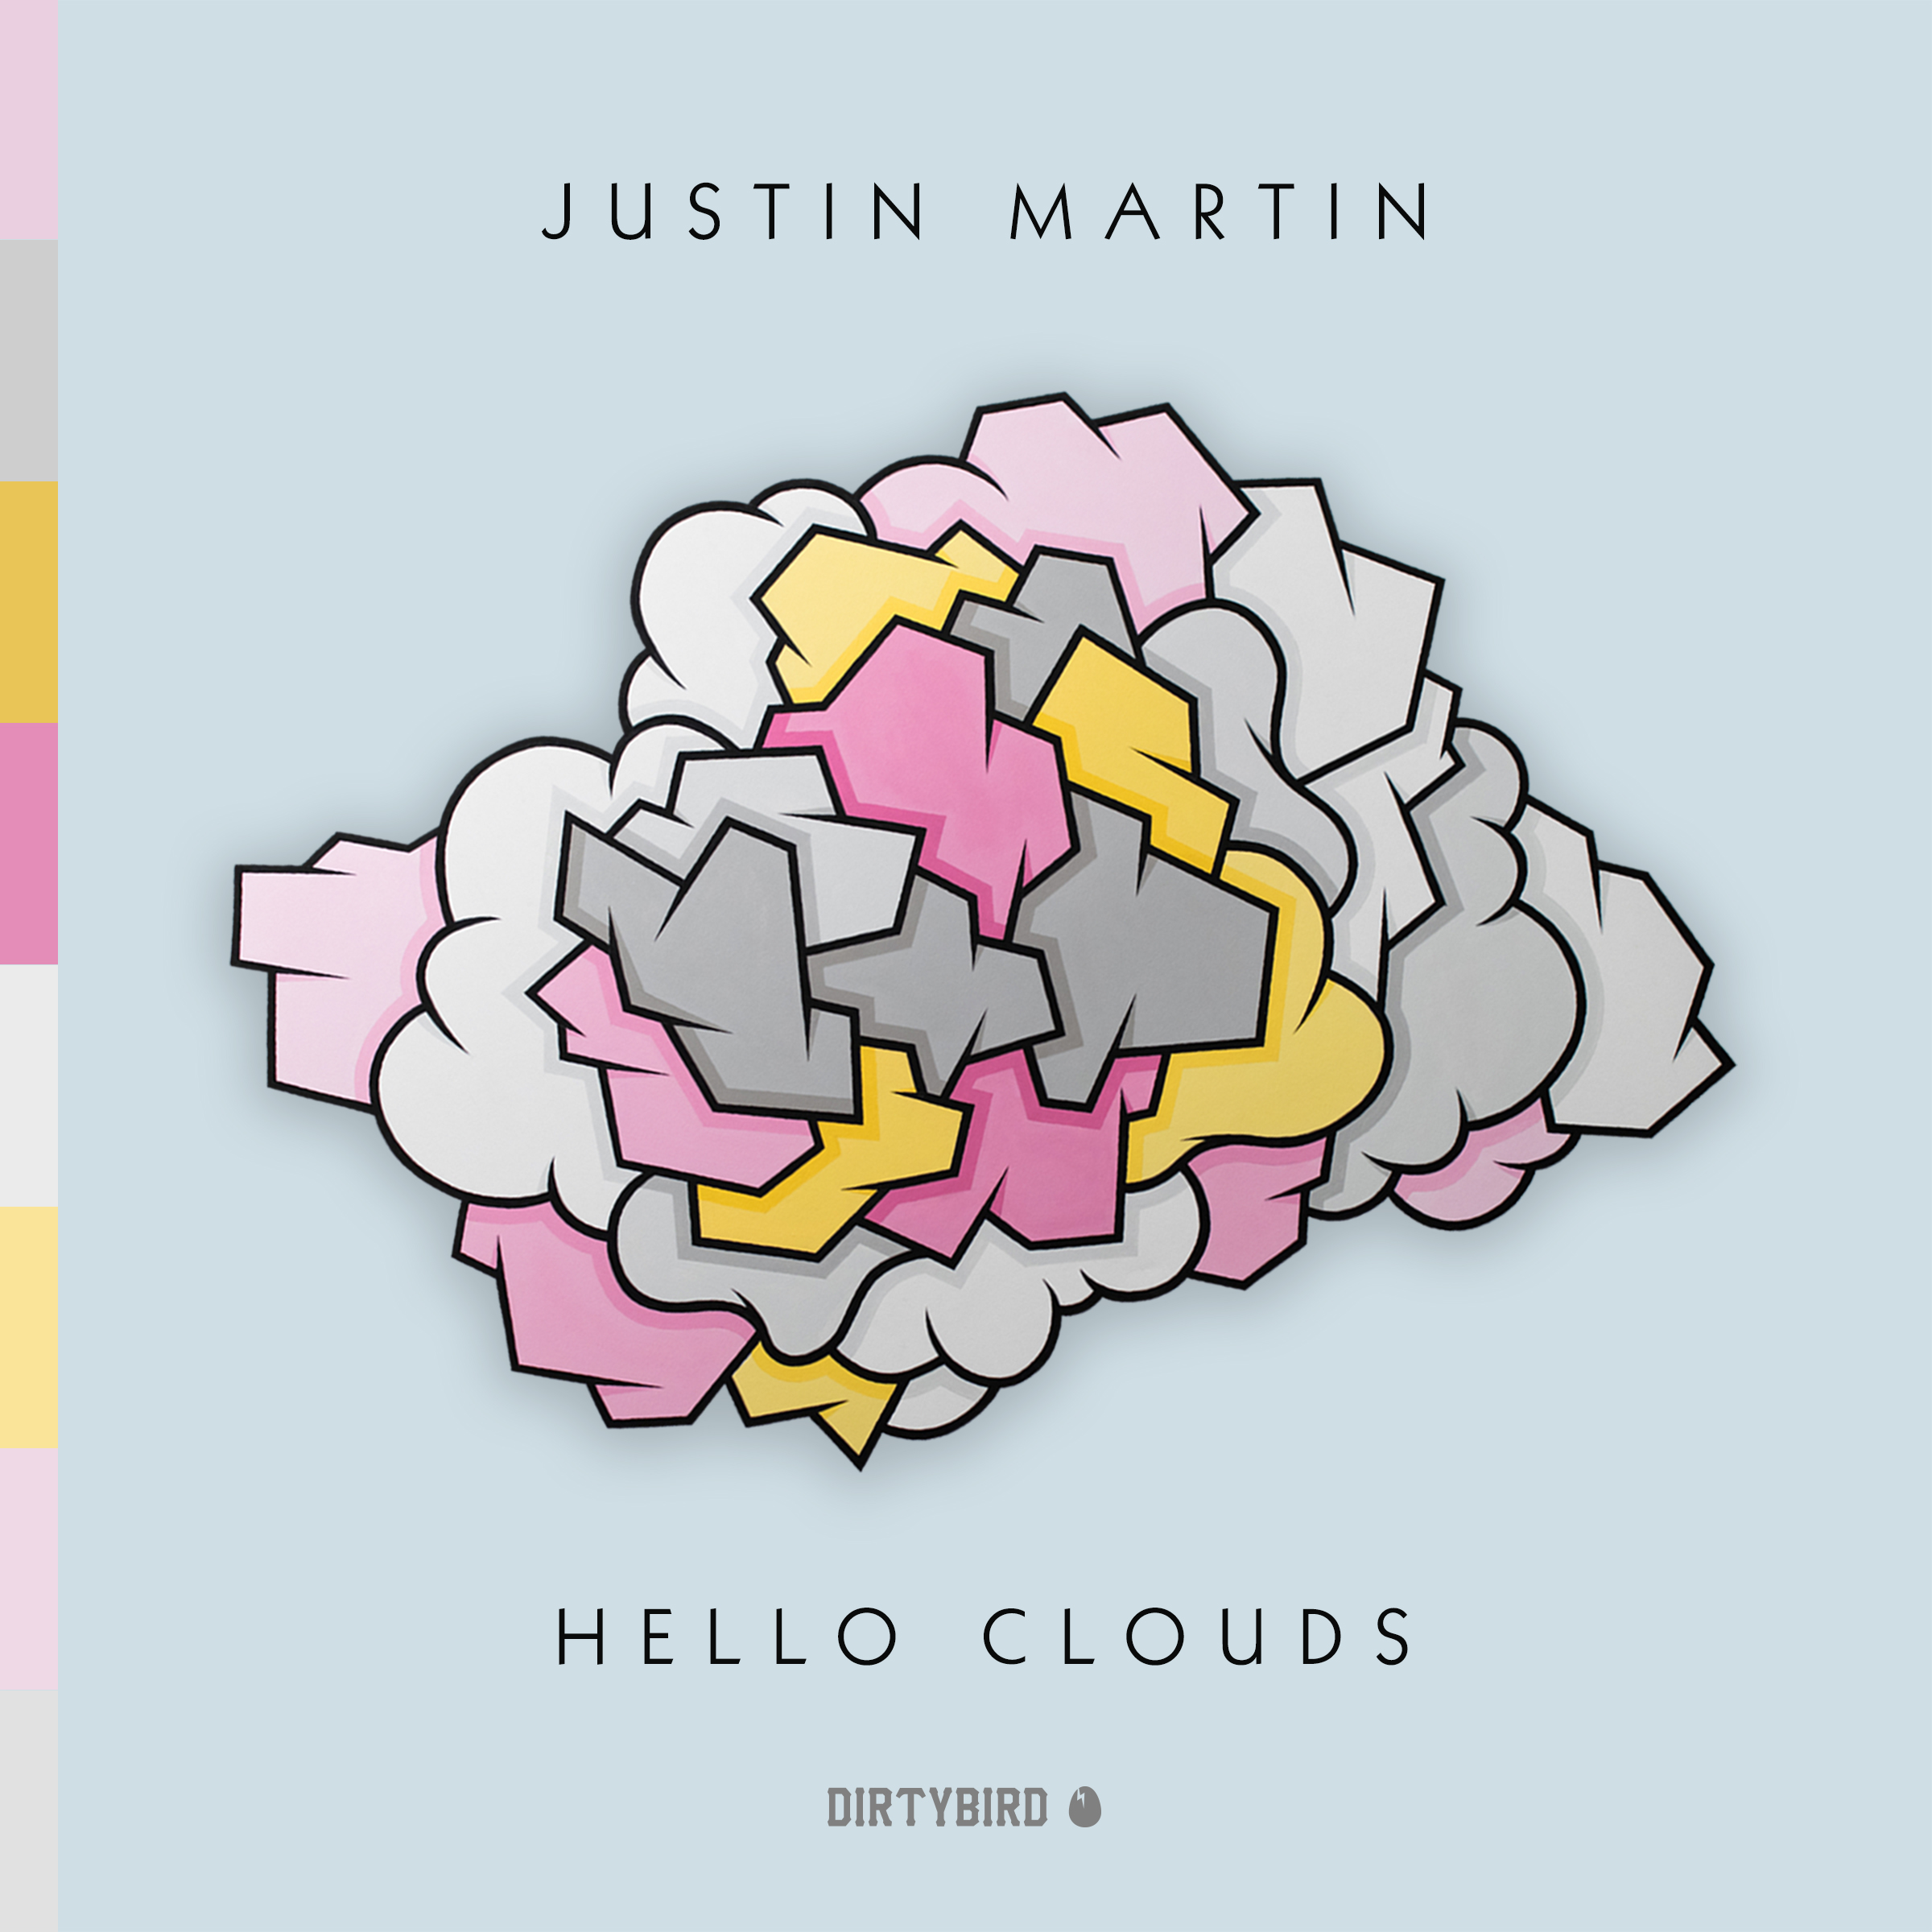 Justinmartin helloclouds final